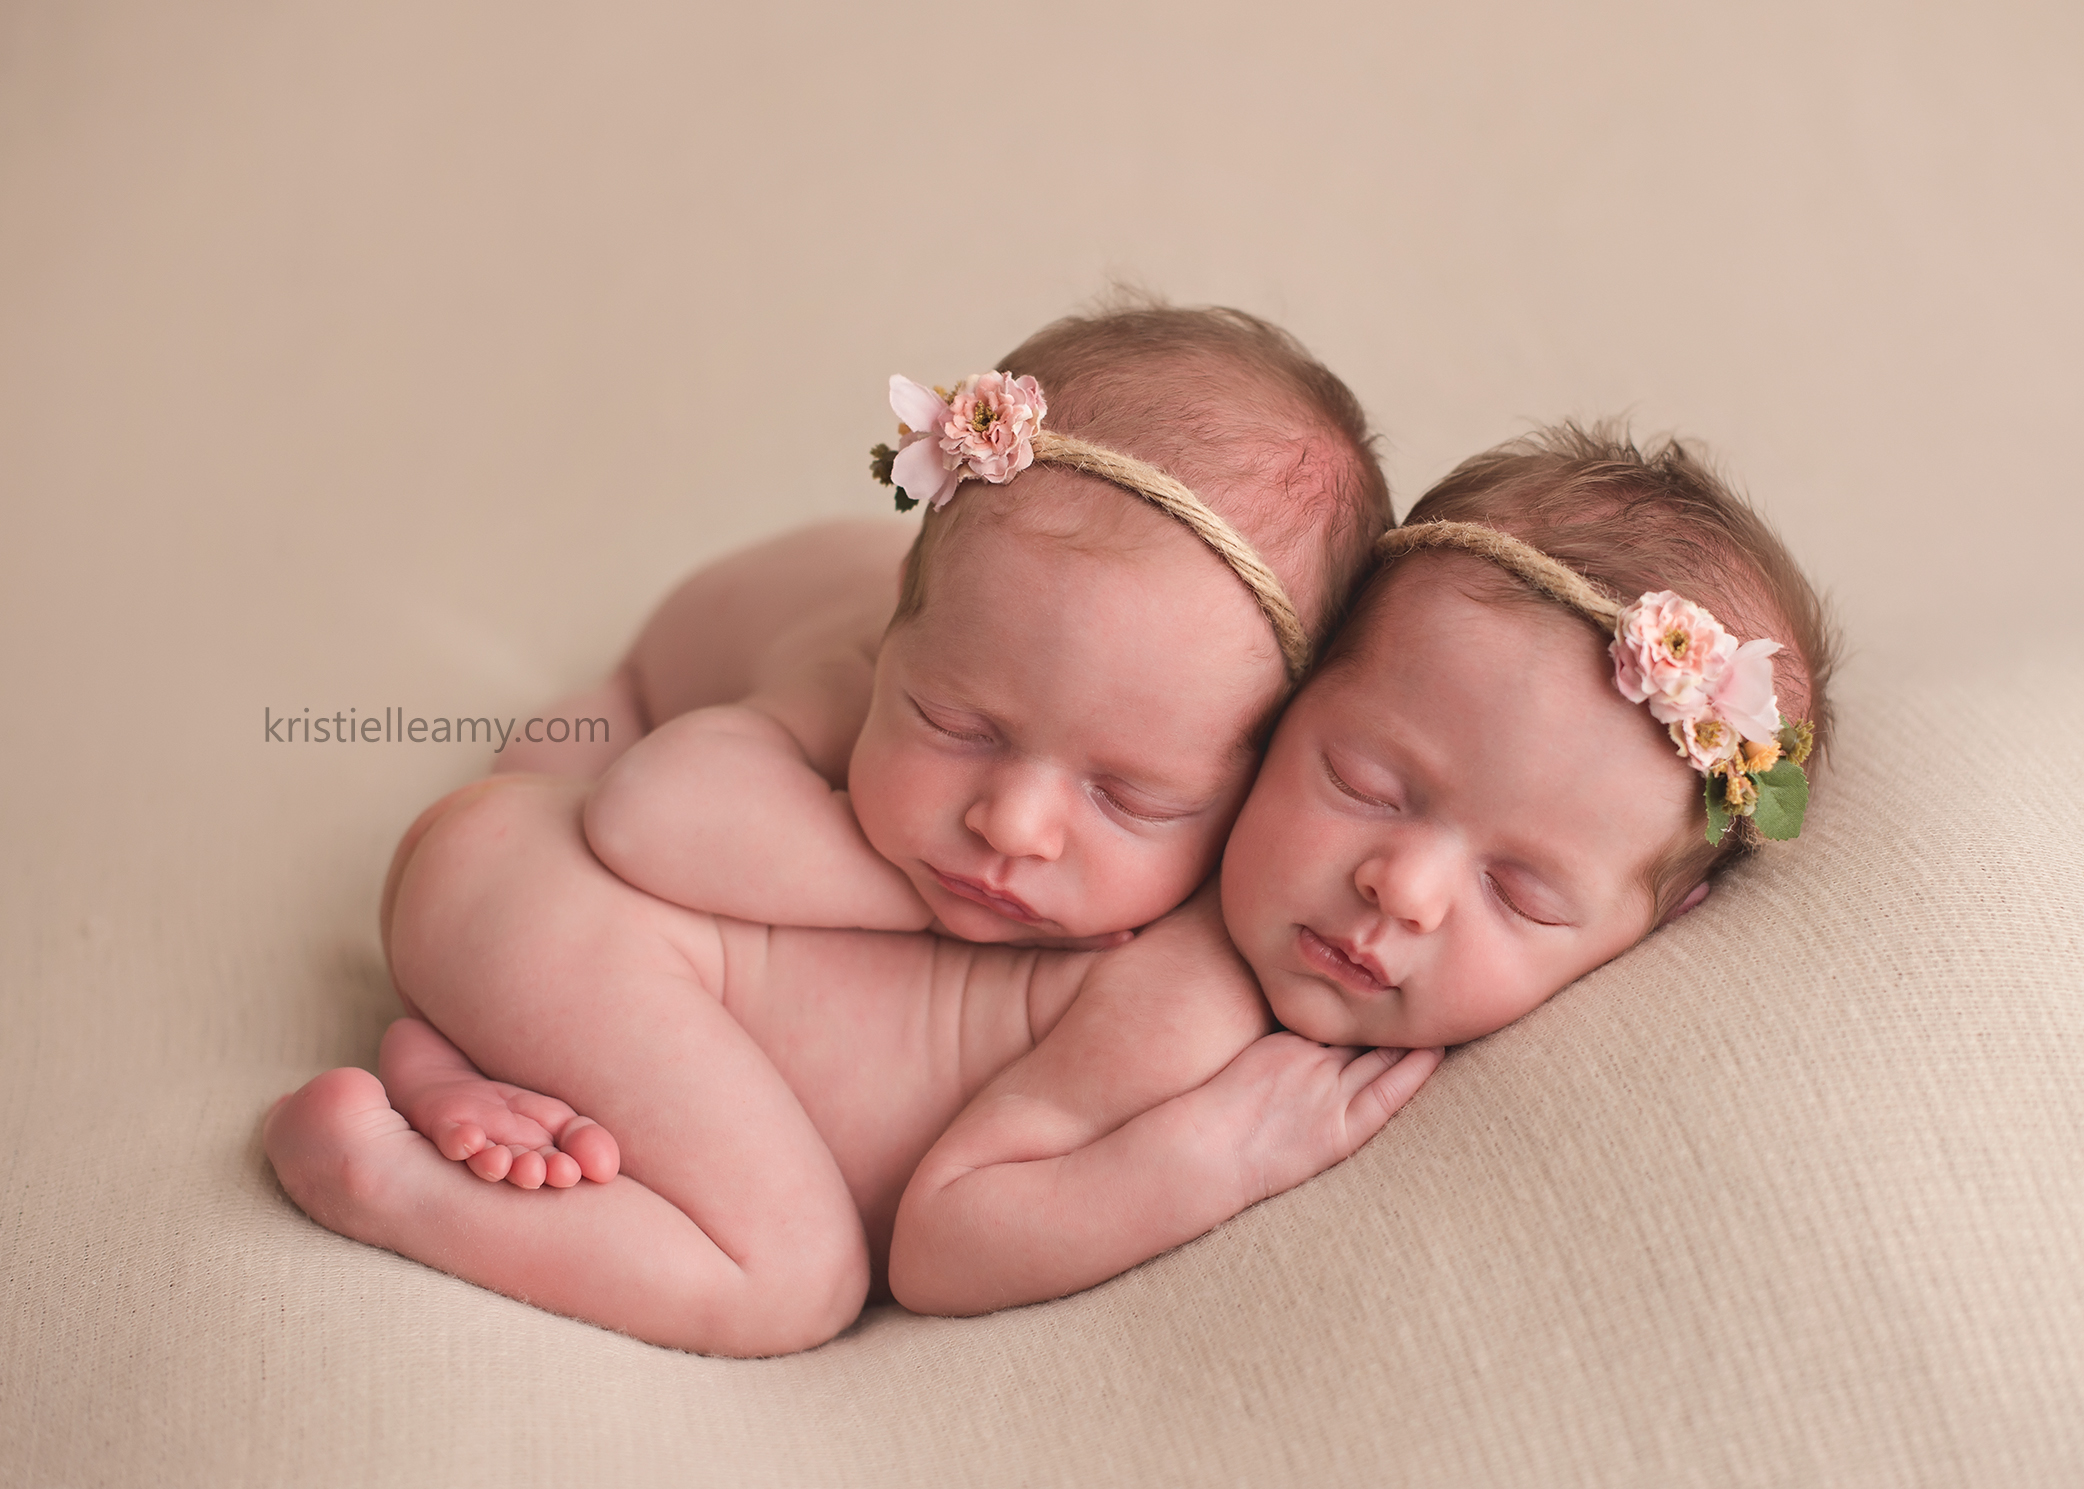 17 day old twin girls echuca newborn photography